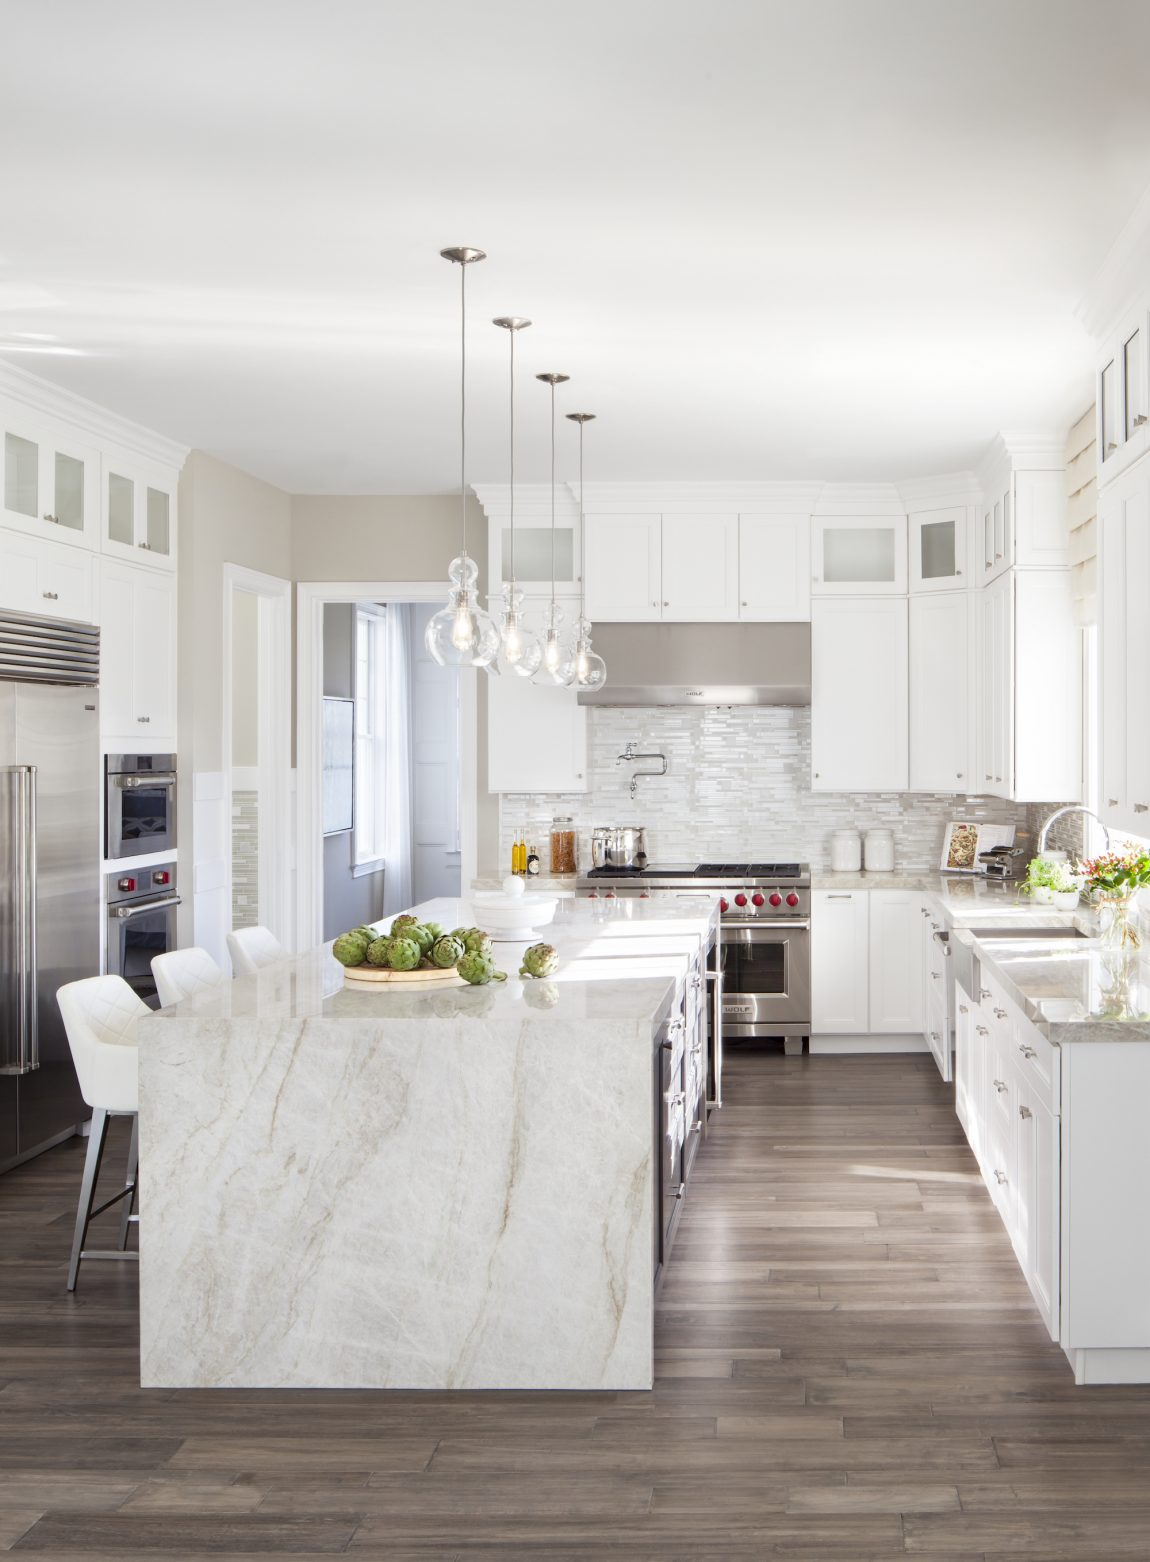 Kitchen with white cabinets and waterfall counter.